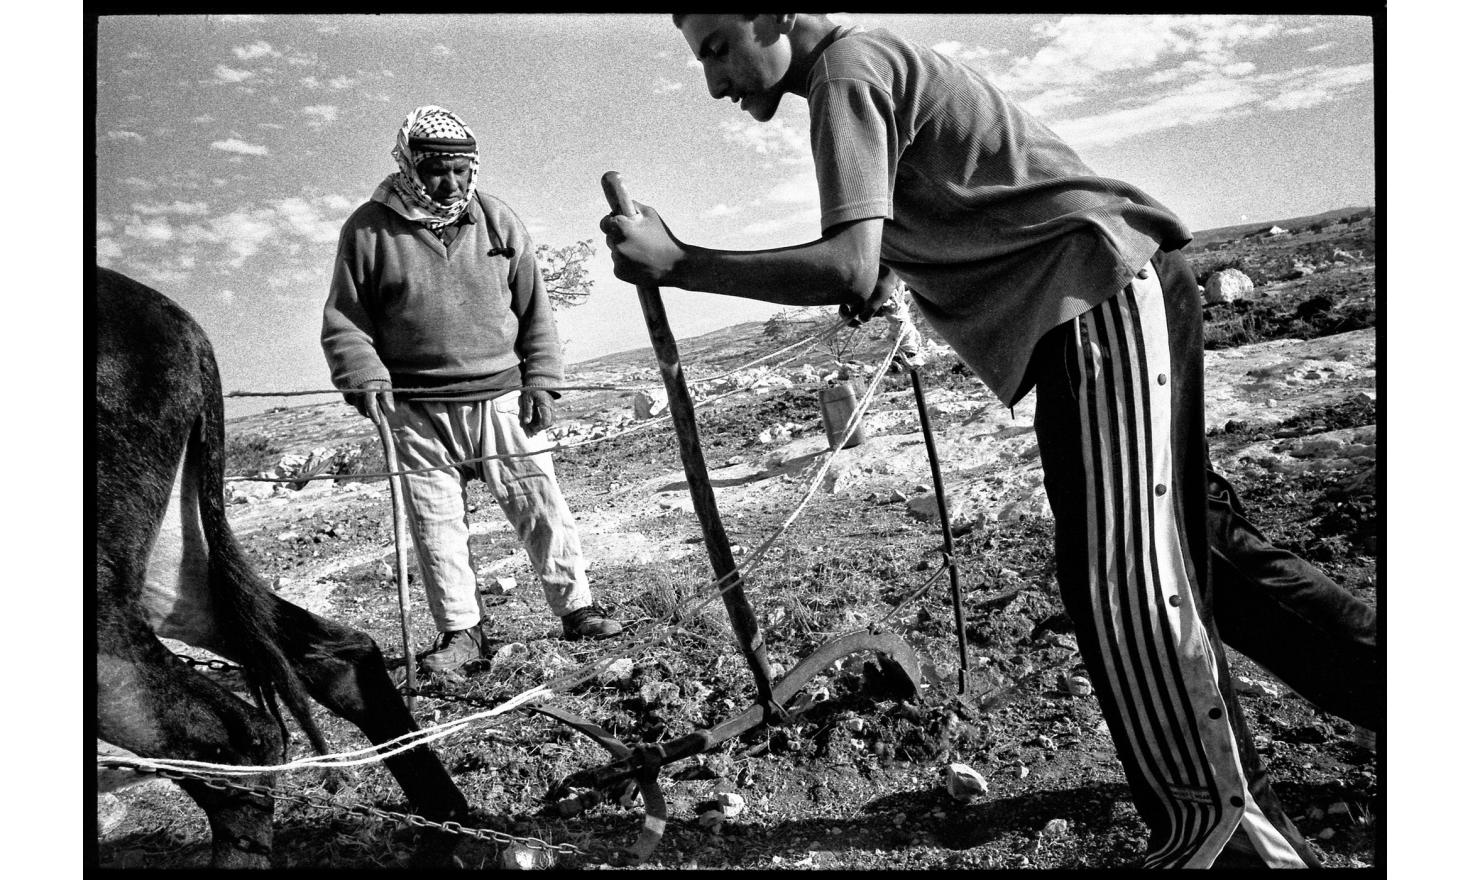 Palestinian villages south of Hebron. Each year, the settlers conquer owned land to peasants. A Palestinian grandfather teaches plowing to his little granson. West Bank, South of Hebron, November 2005.